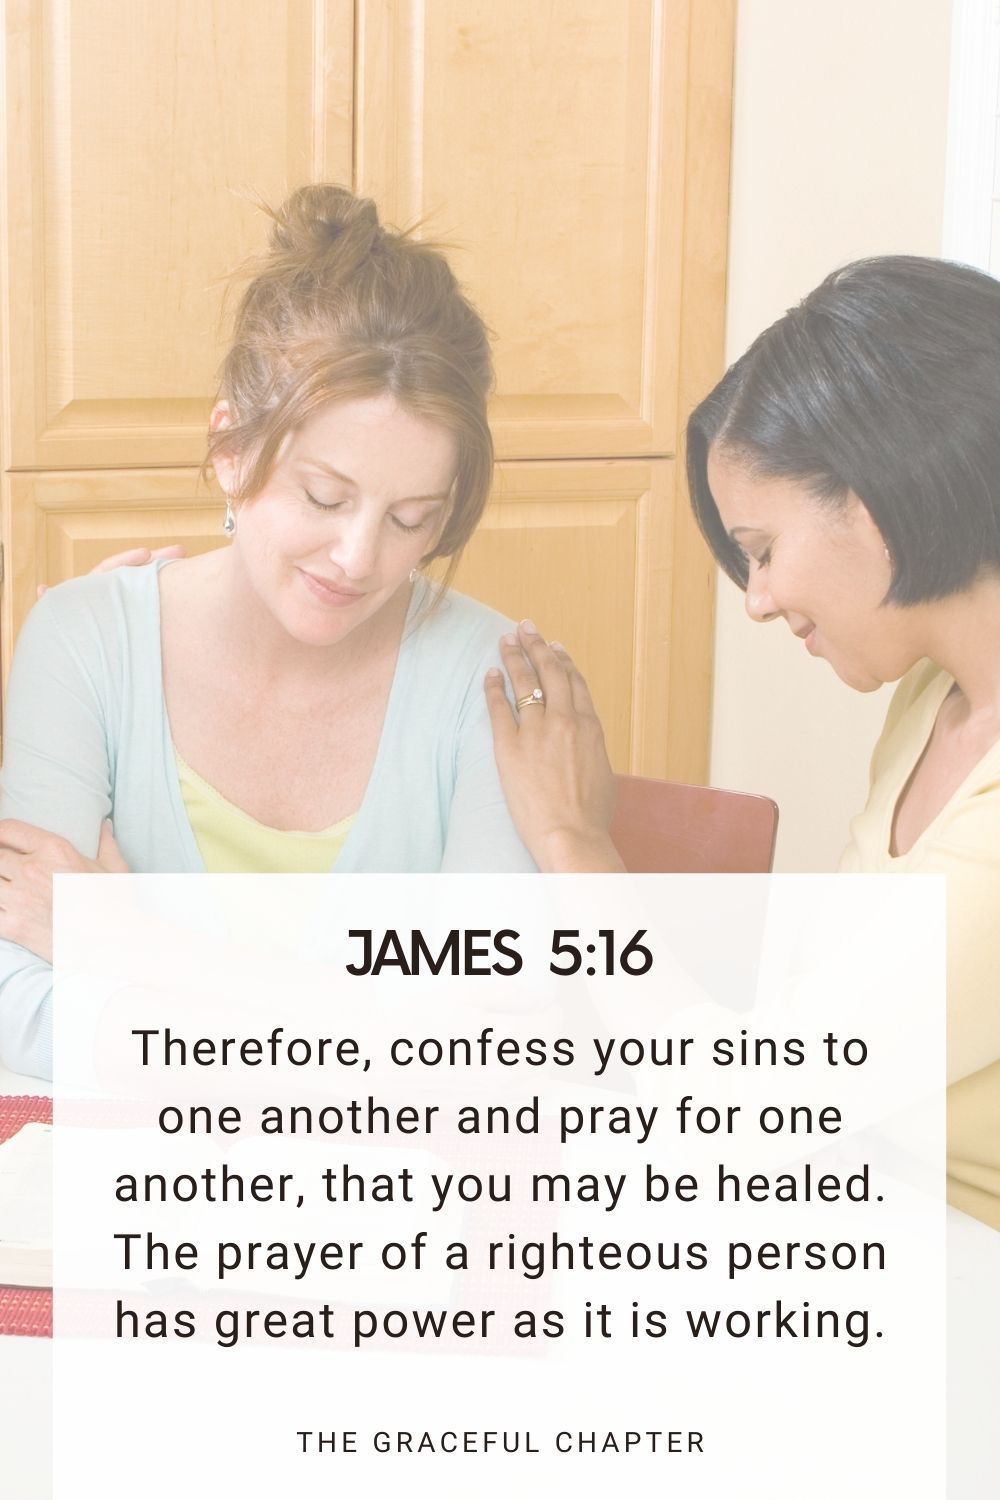 Therefore, confess your sins to one another and pray for one another, that you may be healed. The prayer of a righteous person has great power as it is working. James 5:16